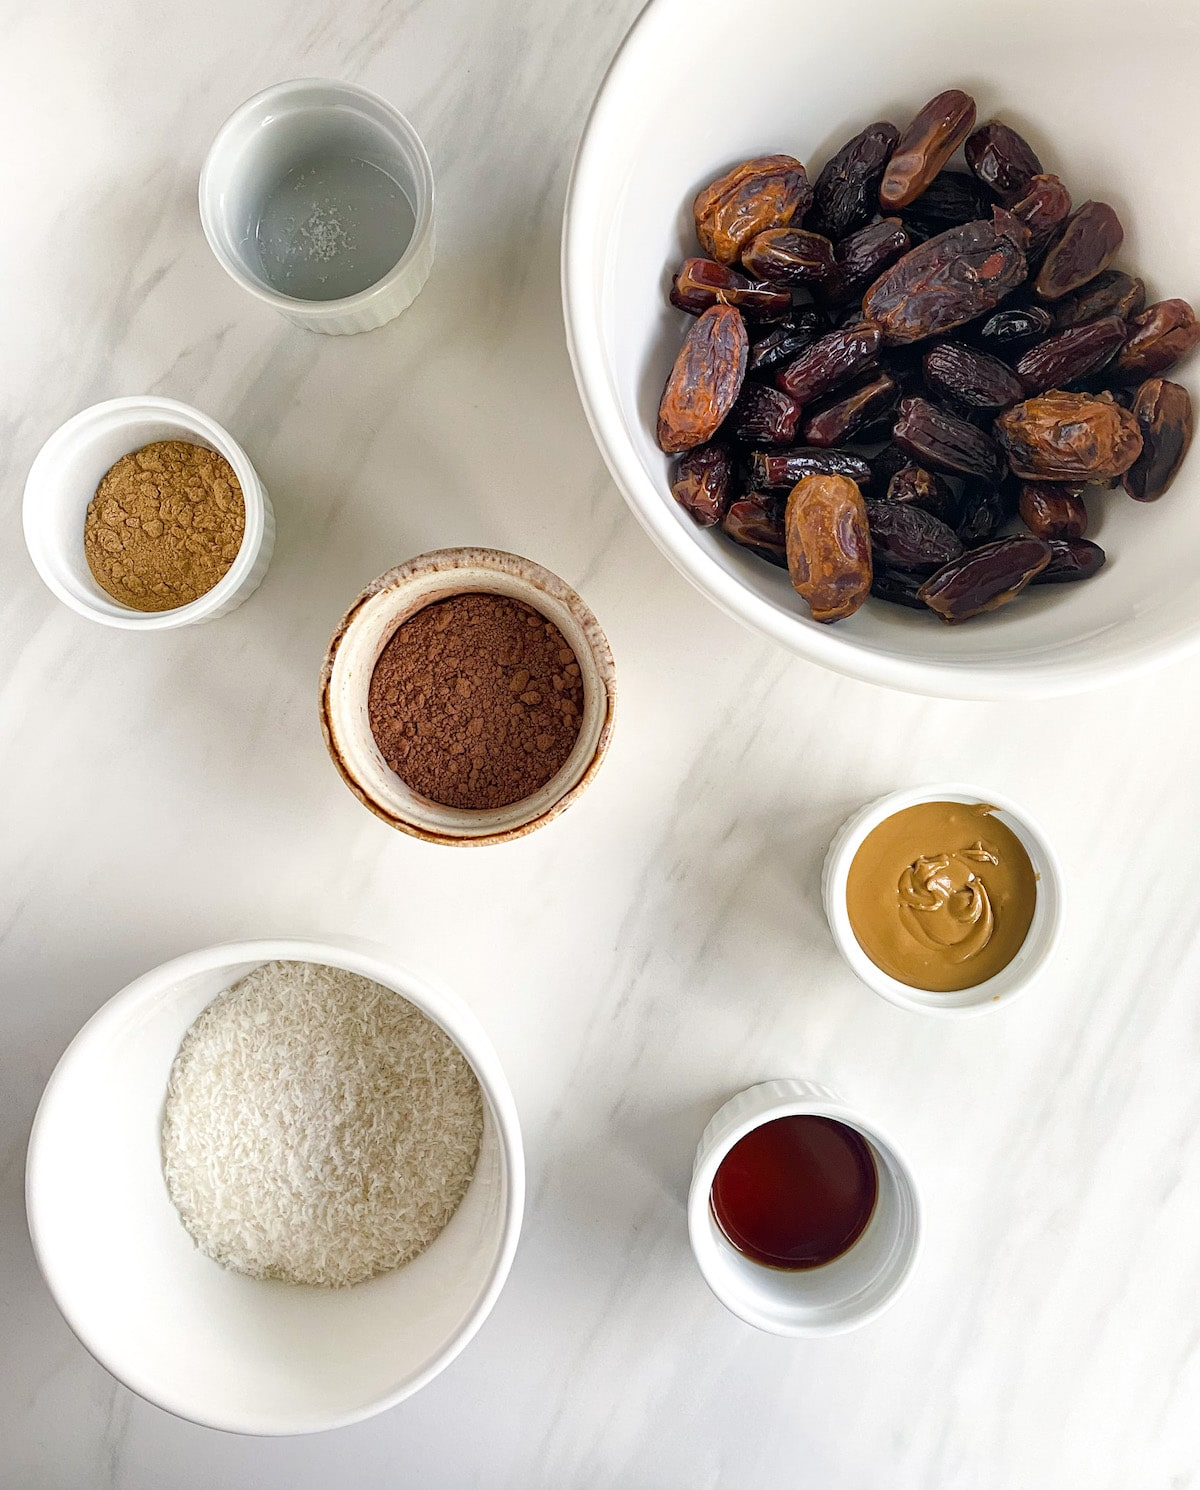 Bowls of ingredients for energy balls